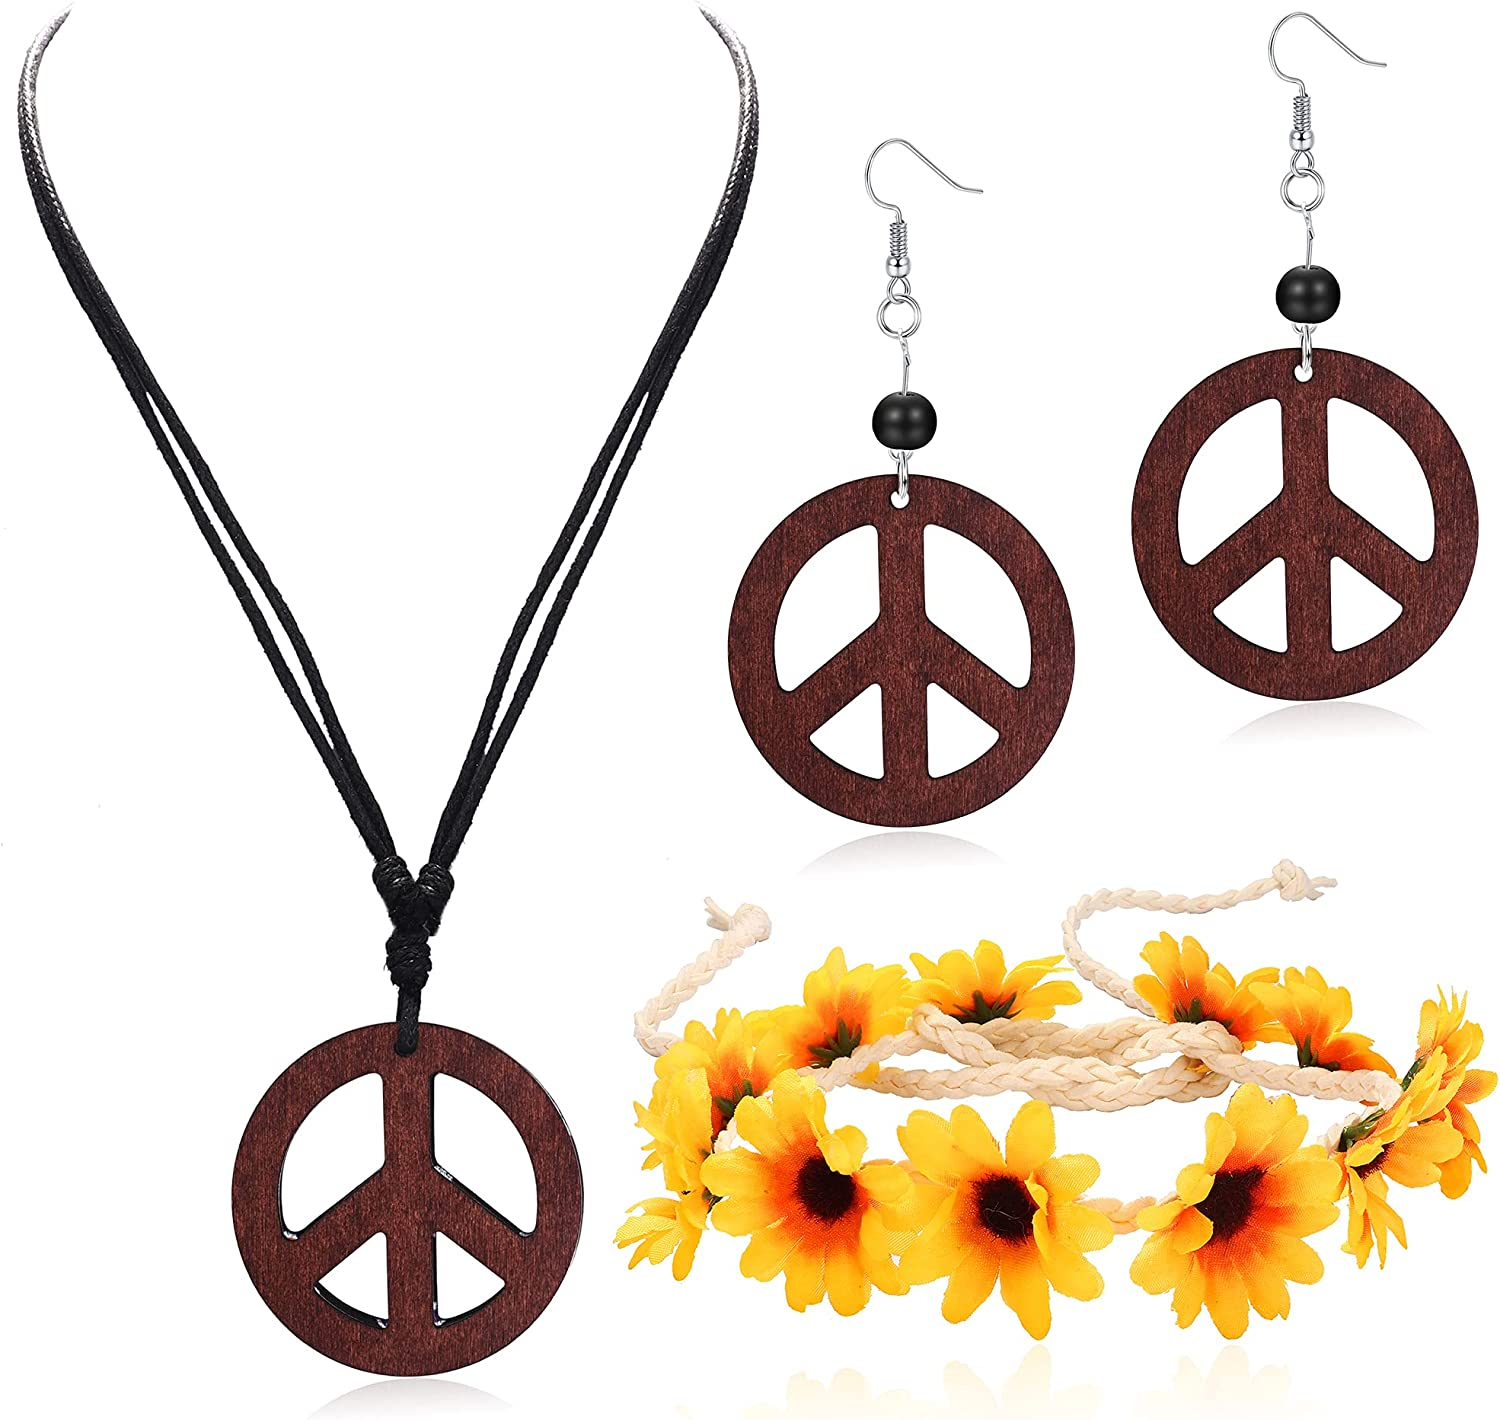 ORAZIO Hippie Costume Set for Women Peace Sign Necklace Peace Sign Earring Flower Crown Headband 60s 70s Party Accessories Jewelry Set